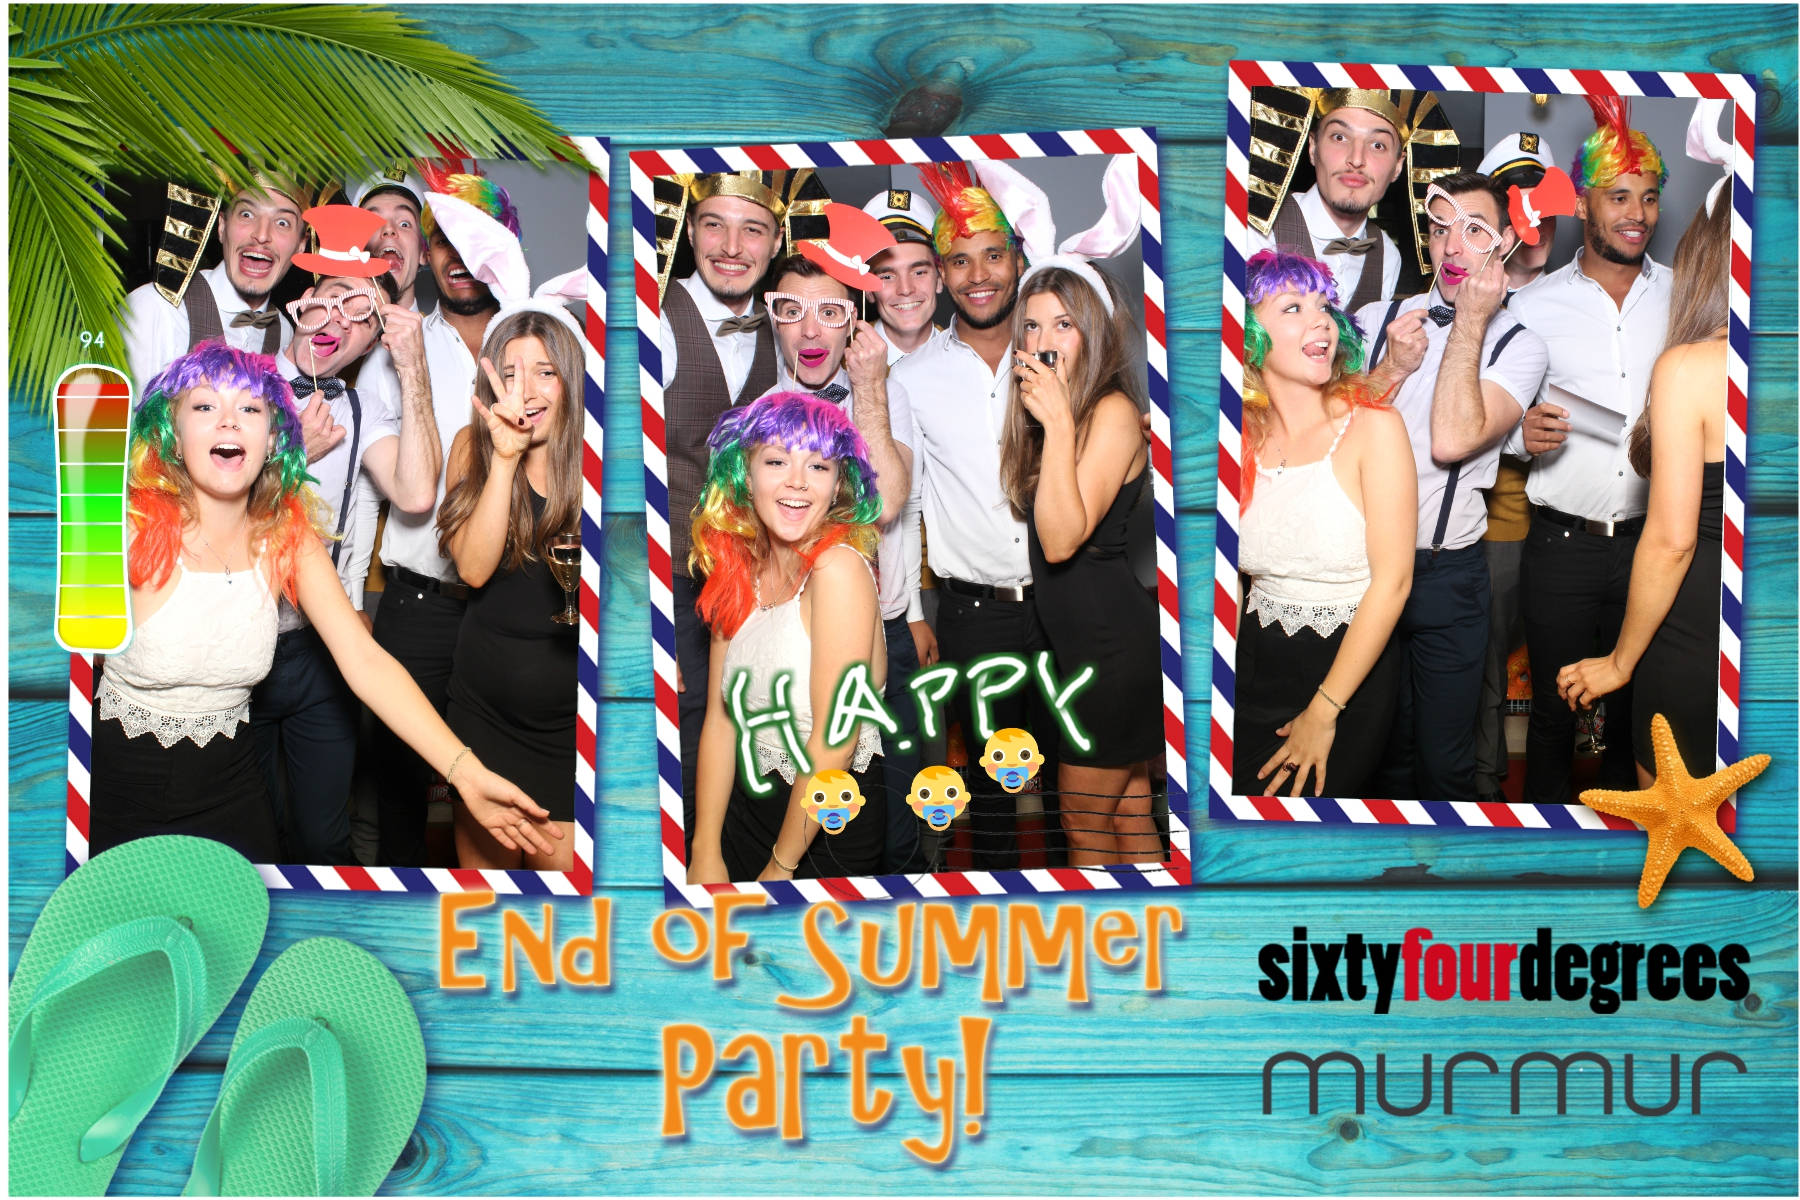 64 degrees & murmur End of Summer Party